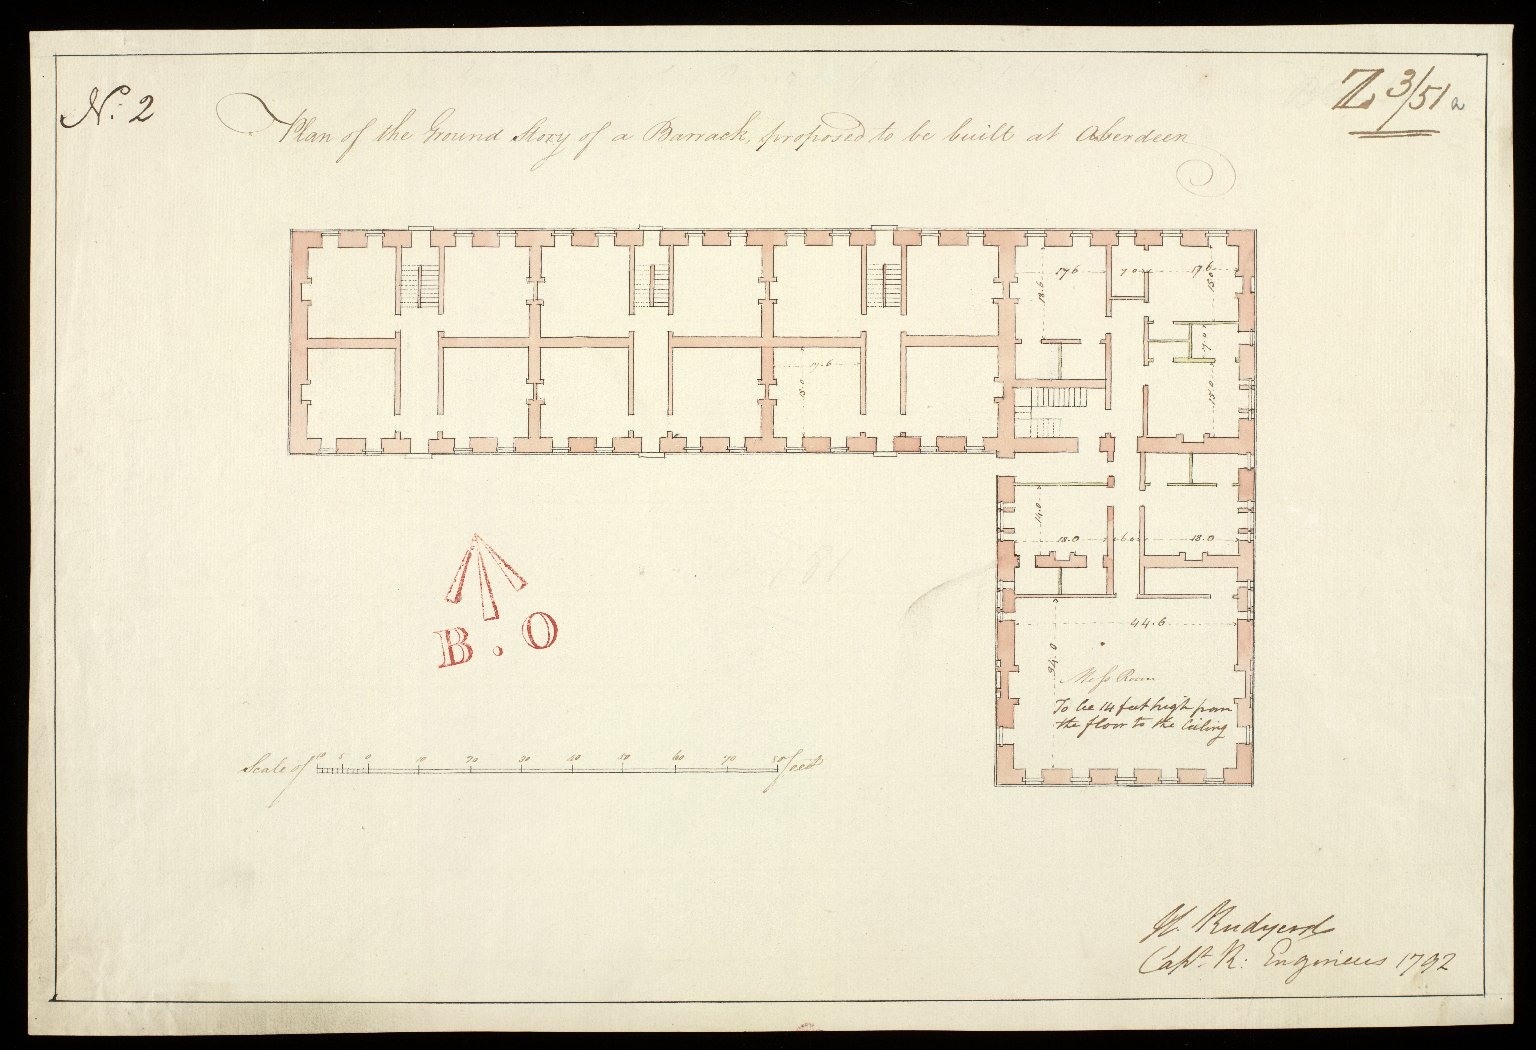 Plan of the ground story [sic] of a barrack, proposed to be built at Aberdeen No. 2 [1 of 1]